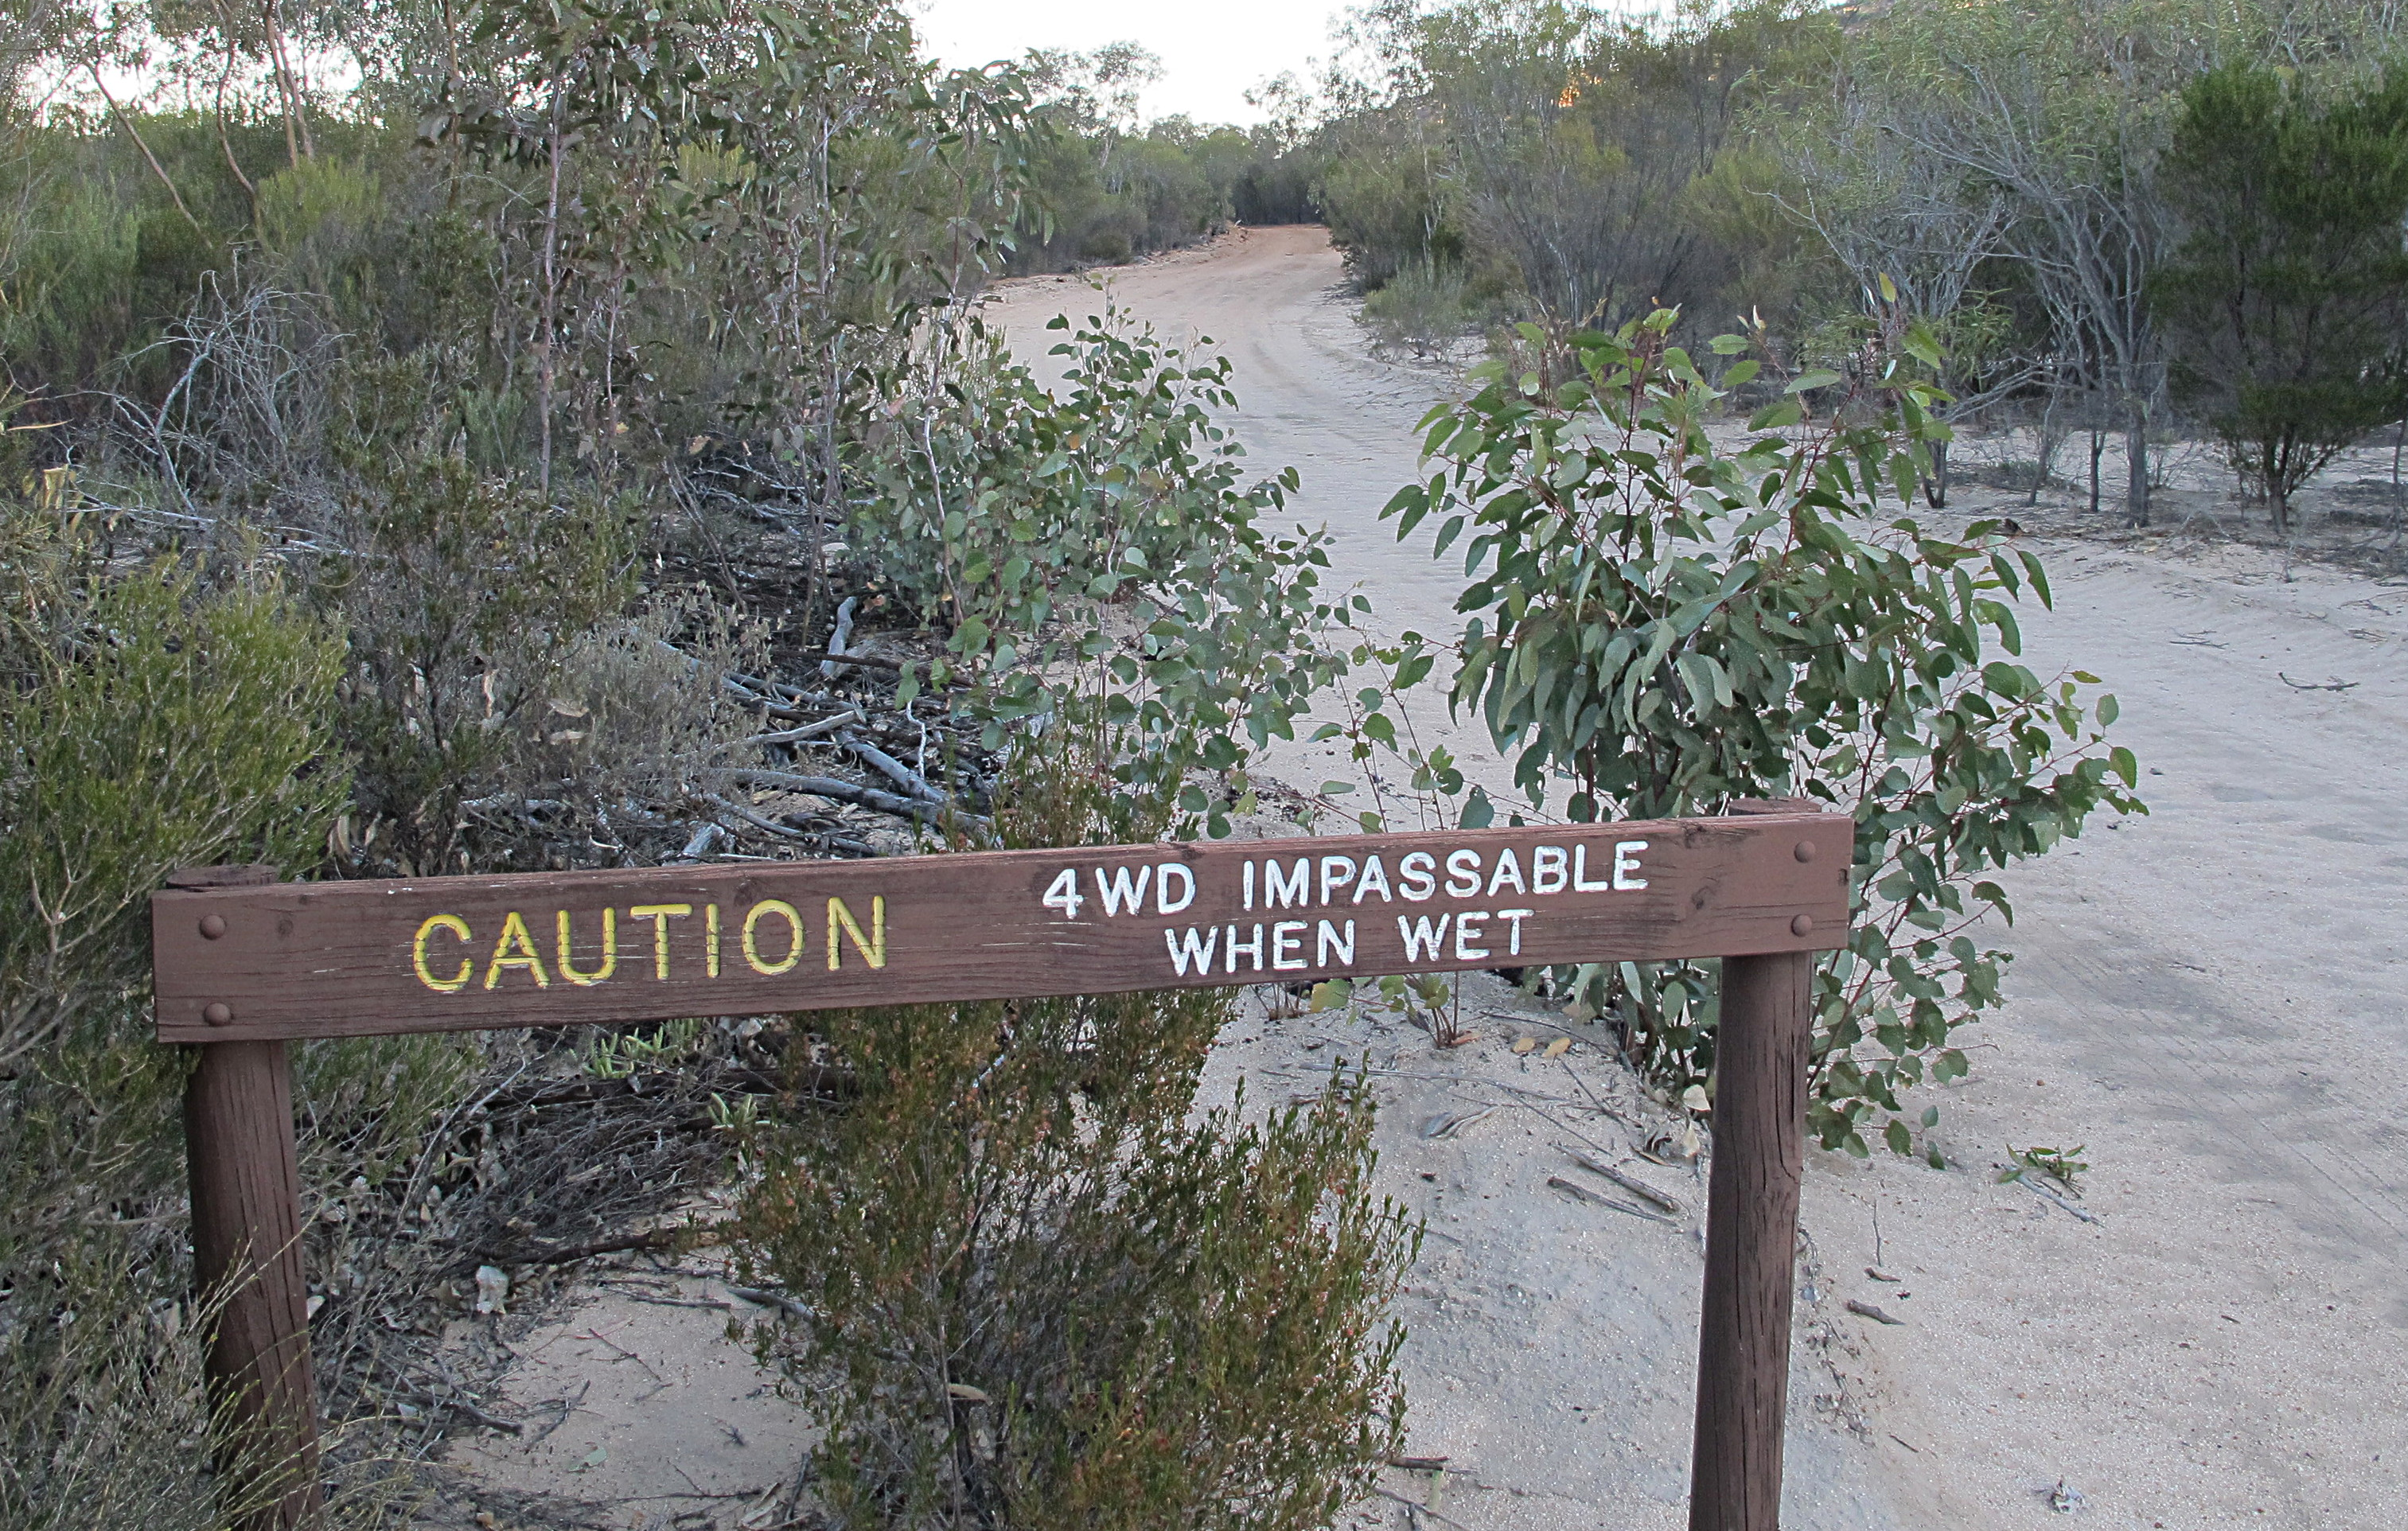 4wd Impassable When Wet